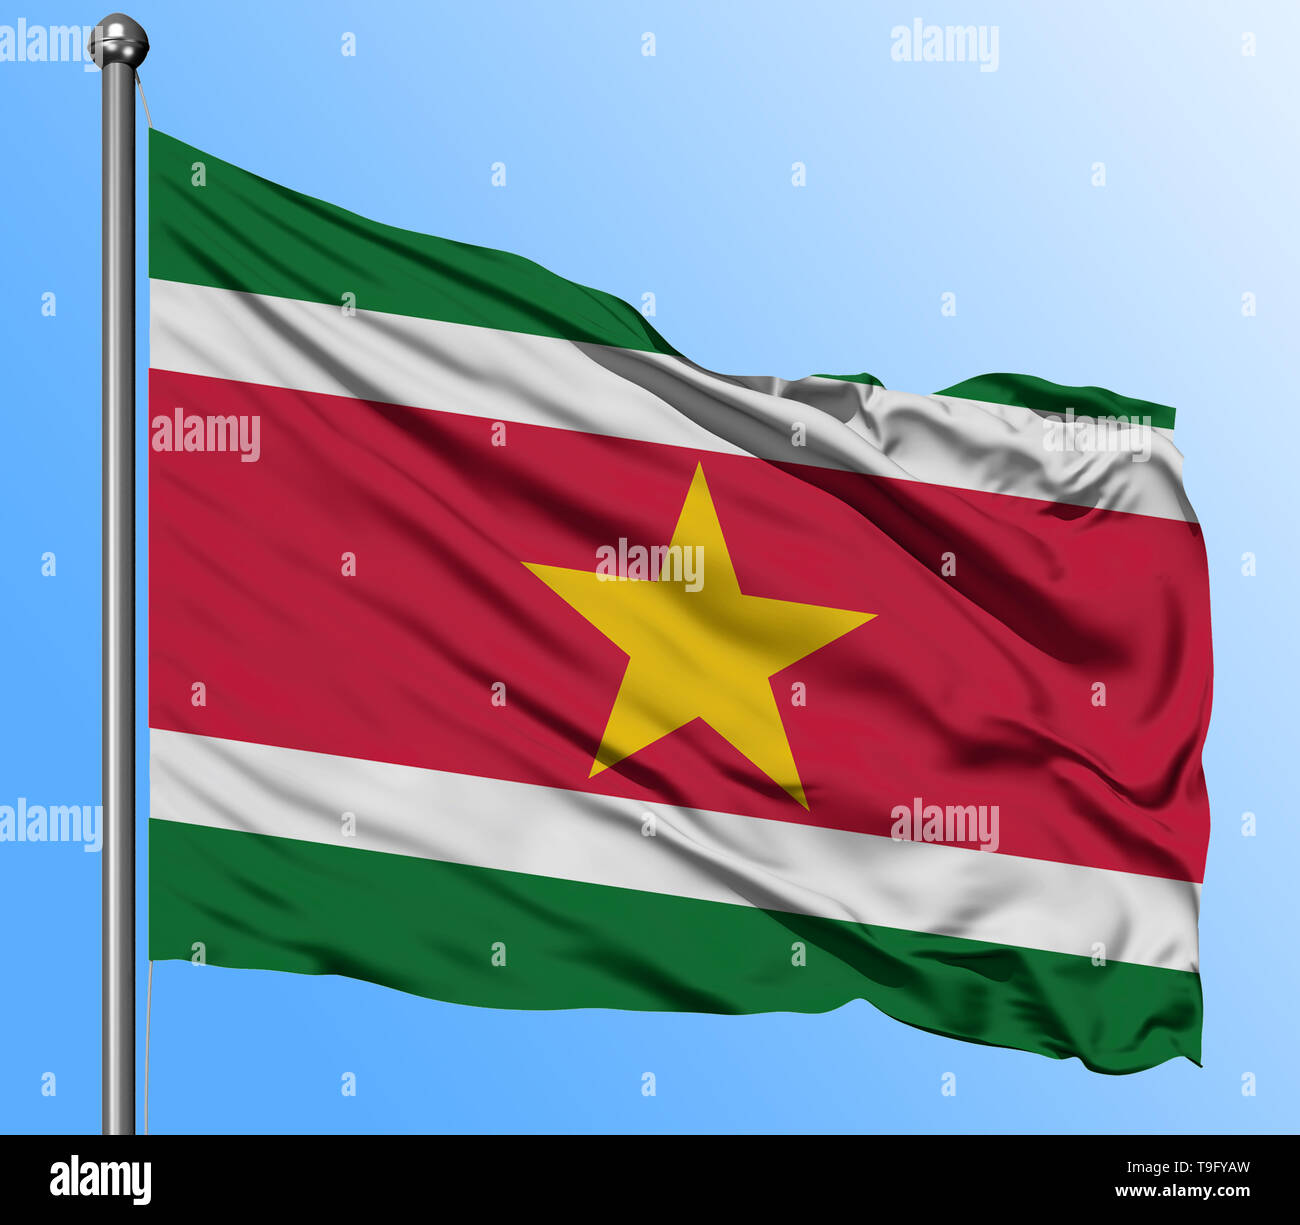 Suriname flag waving in the deep blue sky background. Isolated national flag. Macro view shot. - Stock Image